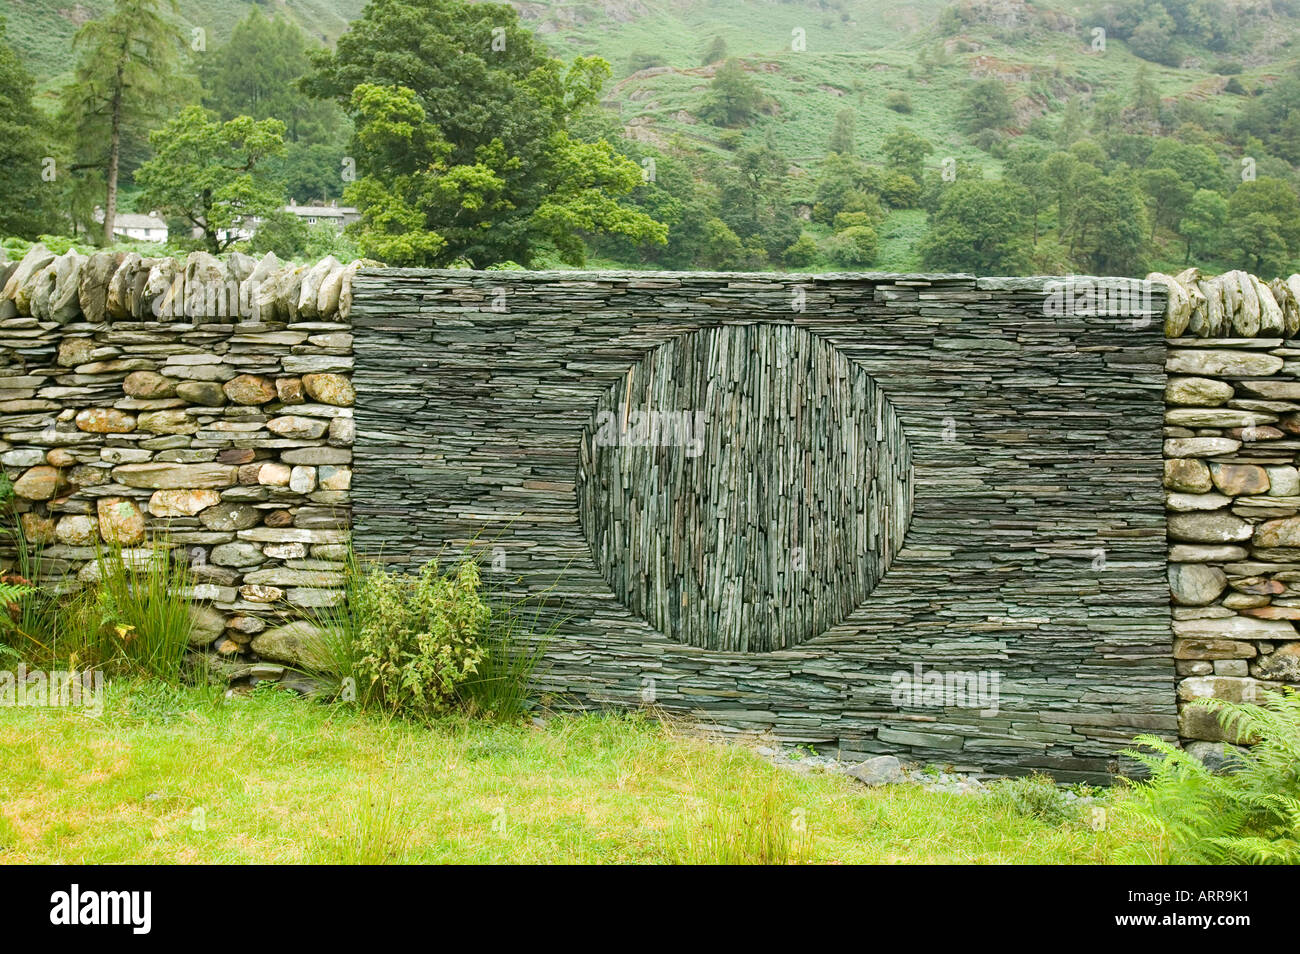 an Andy goldsworthy artworksculpture in a sheep fold at Stock